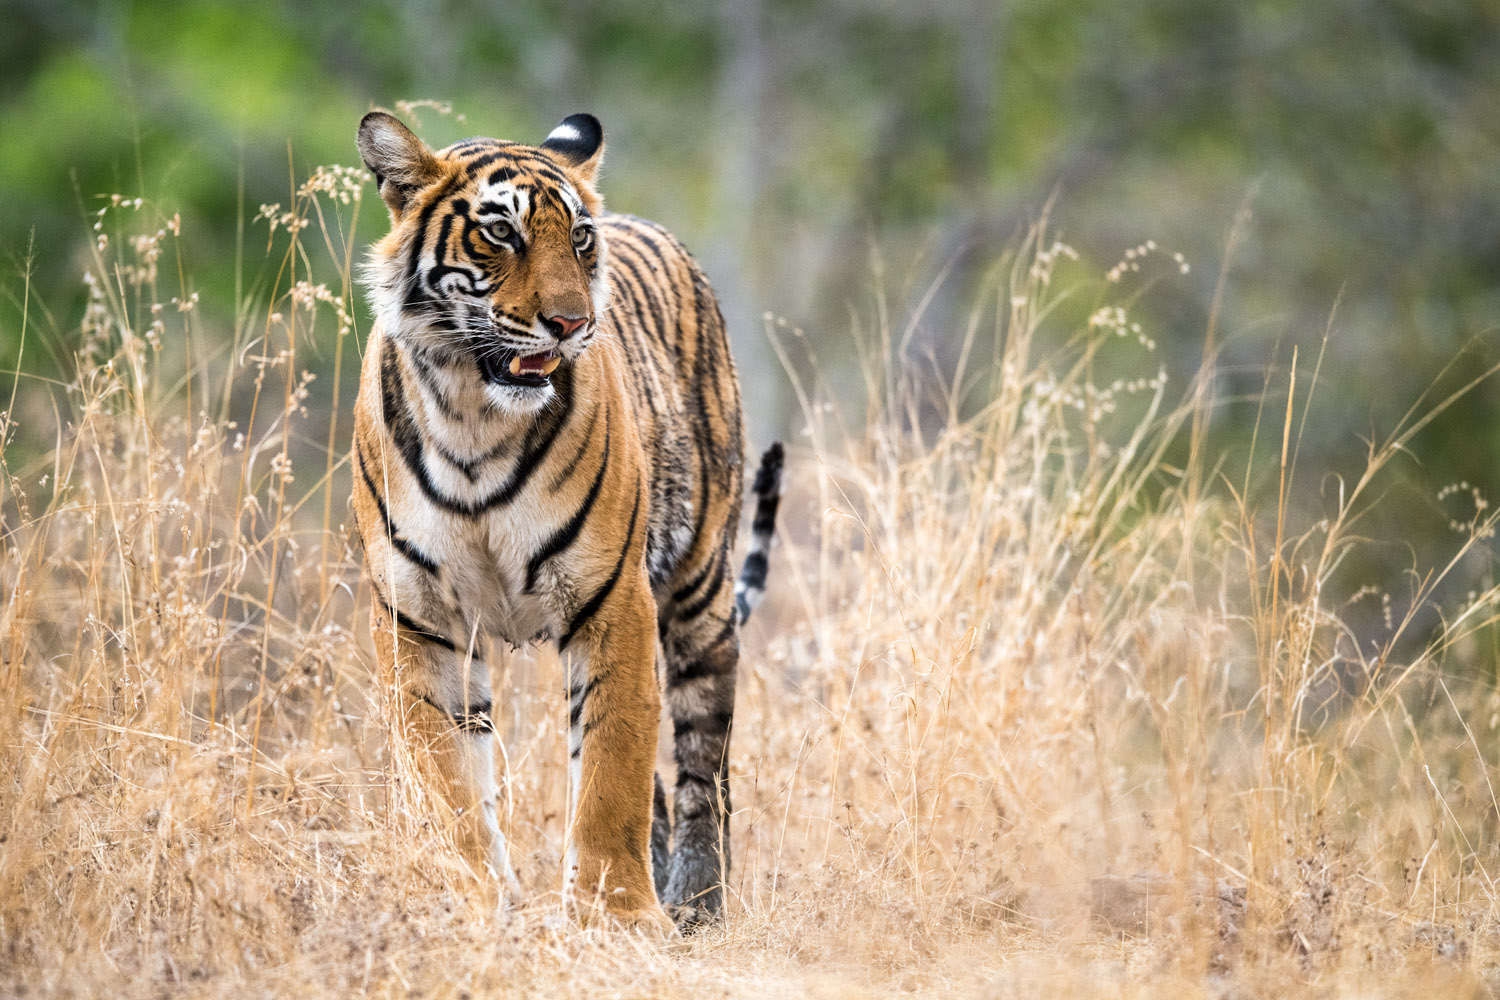 Bengal tigress, Ranthambhore National Park, Rajasthan, India